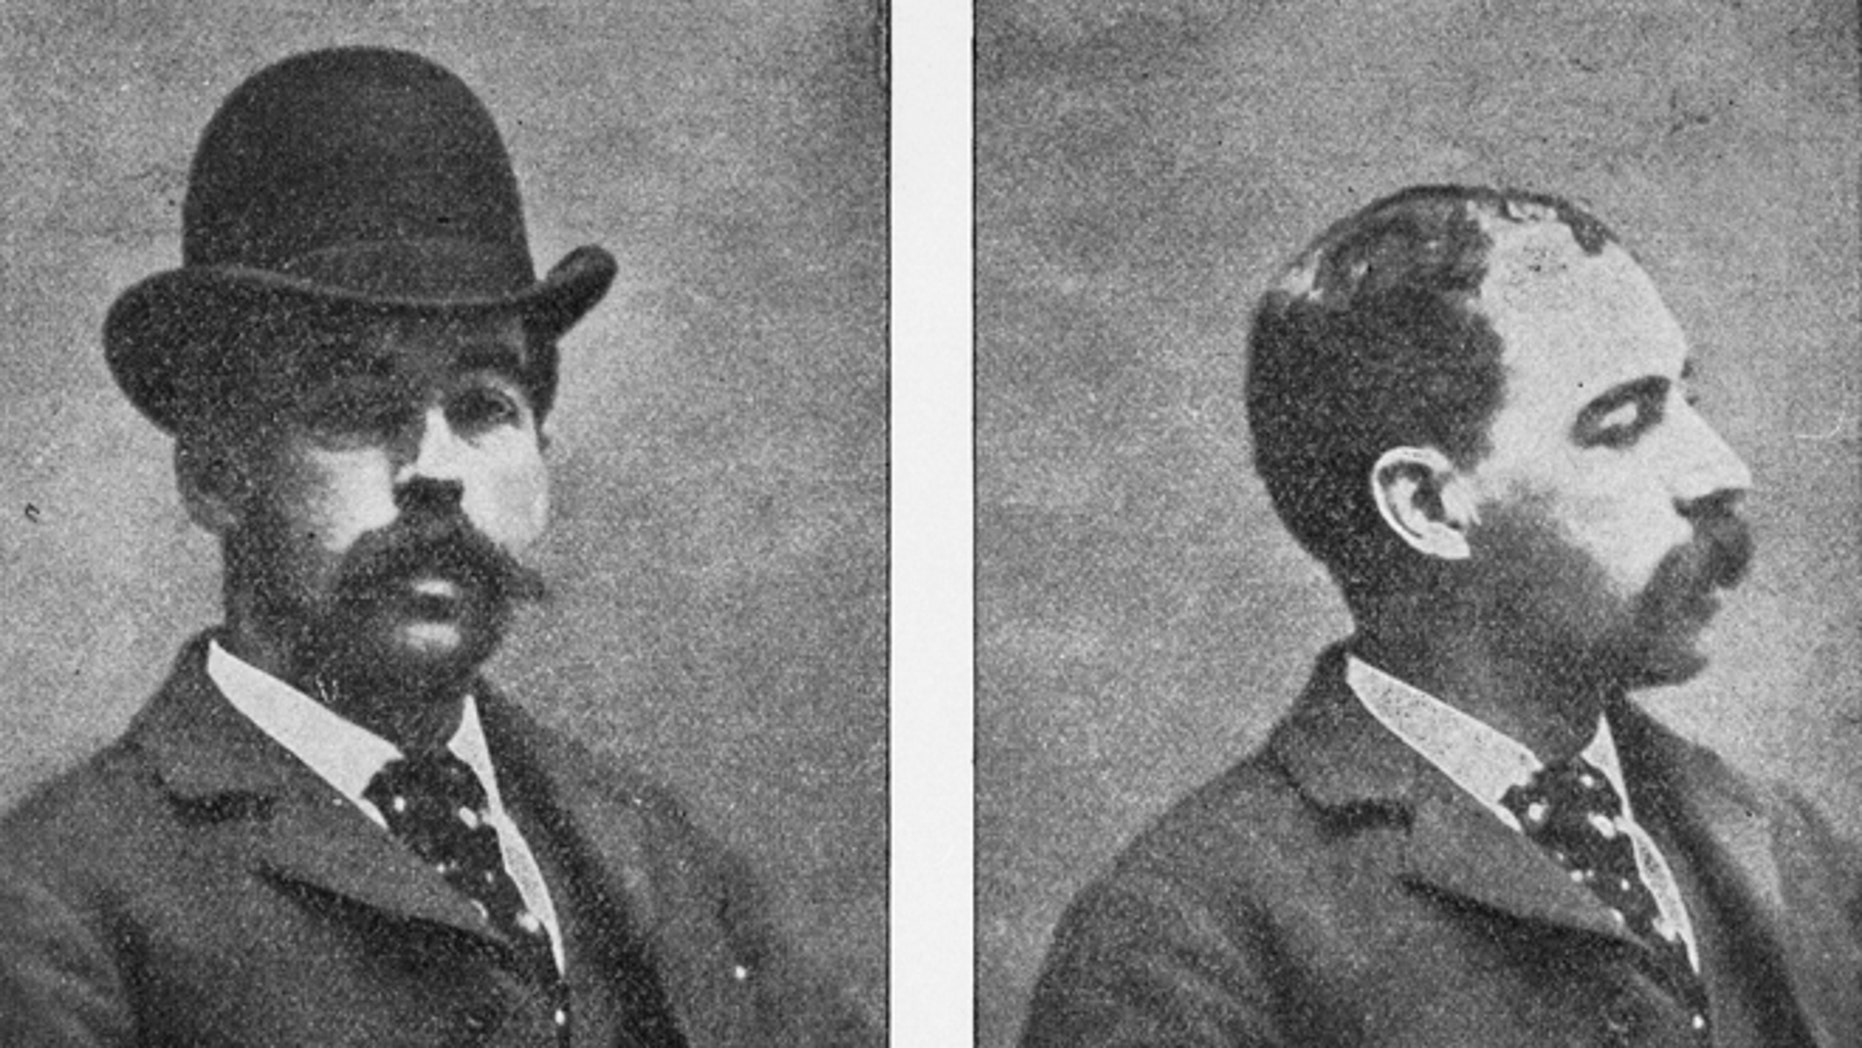 Grave of H H  Holmes, 'America's 1st serial killer,' to be exhumed